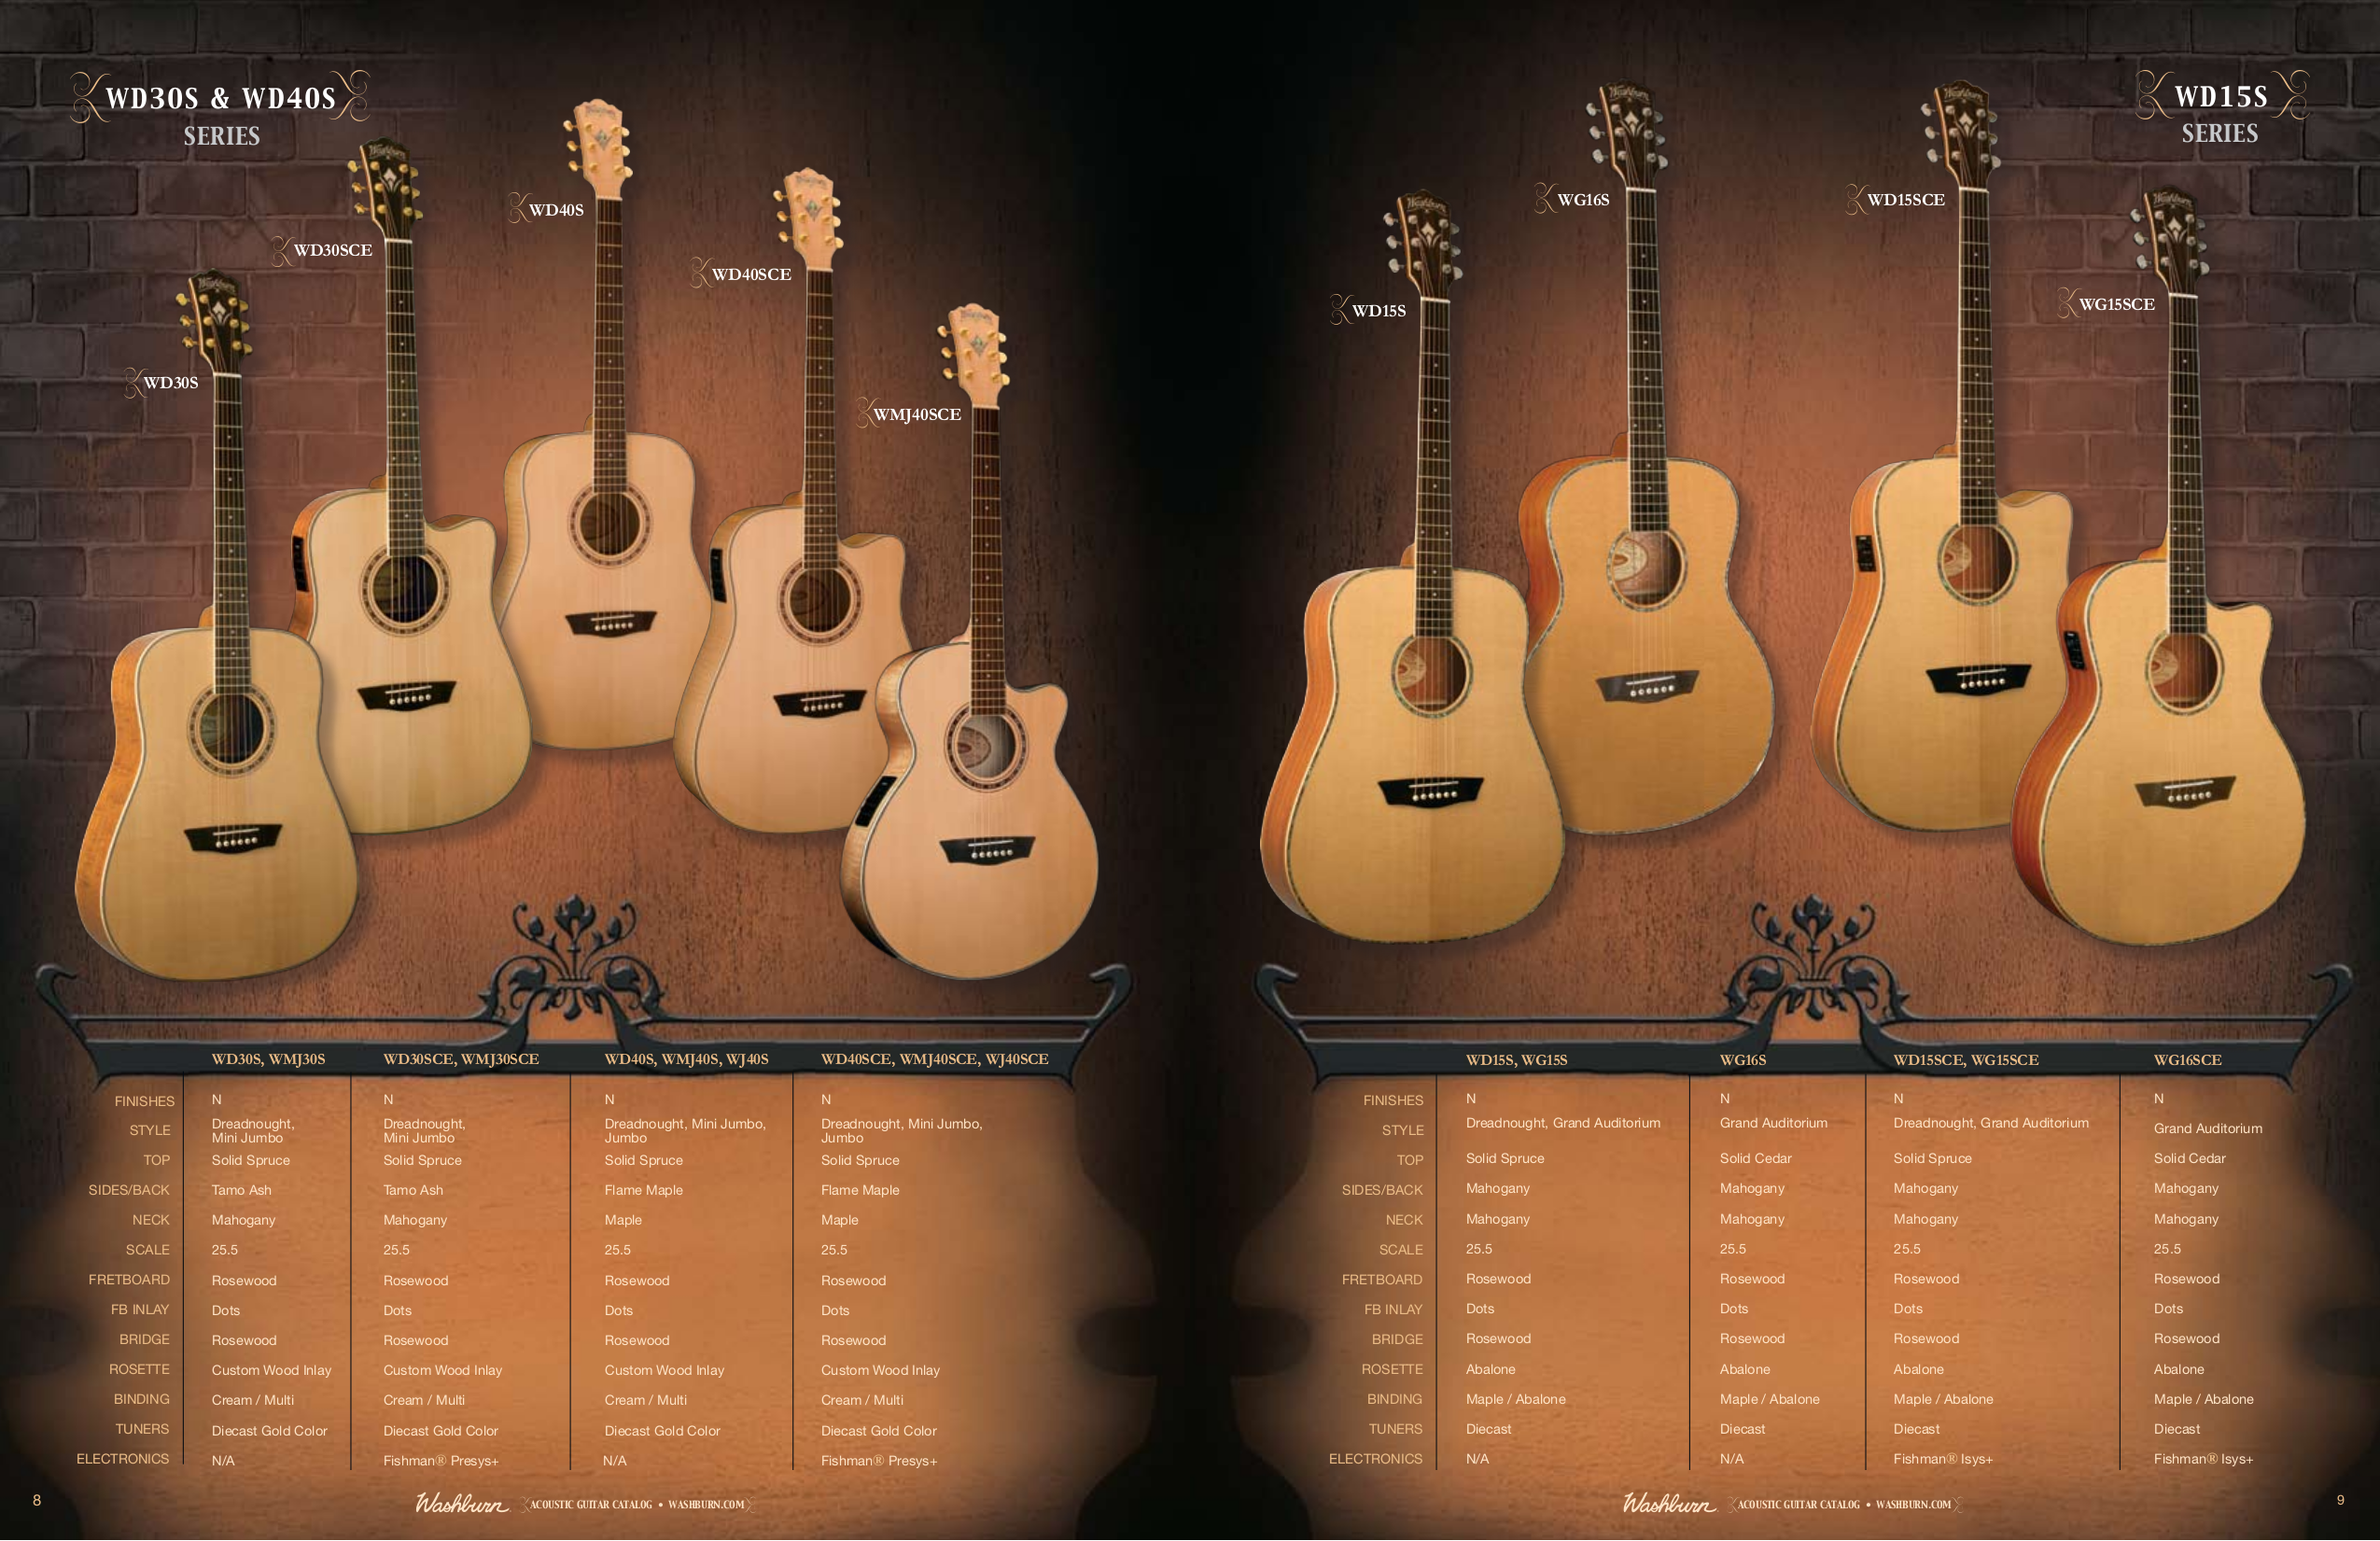 an overview of the production process at washburn guitars -guitar manufacturer such as washburn guitars process cost system provides product costs for each manufacturing department or process--often used by companies that manufacture units of a product that are indistinguishable from each other and are manufactured using a continuous production process.